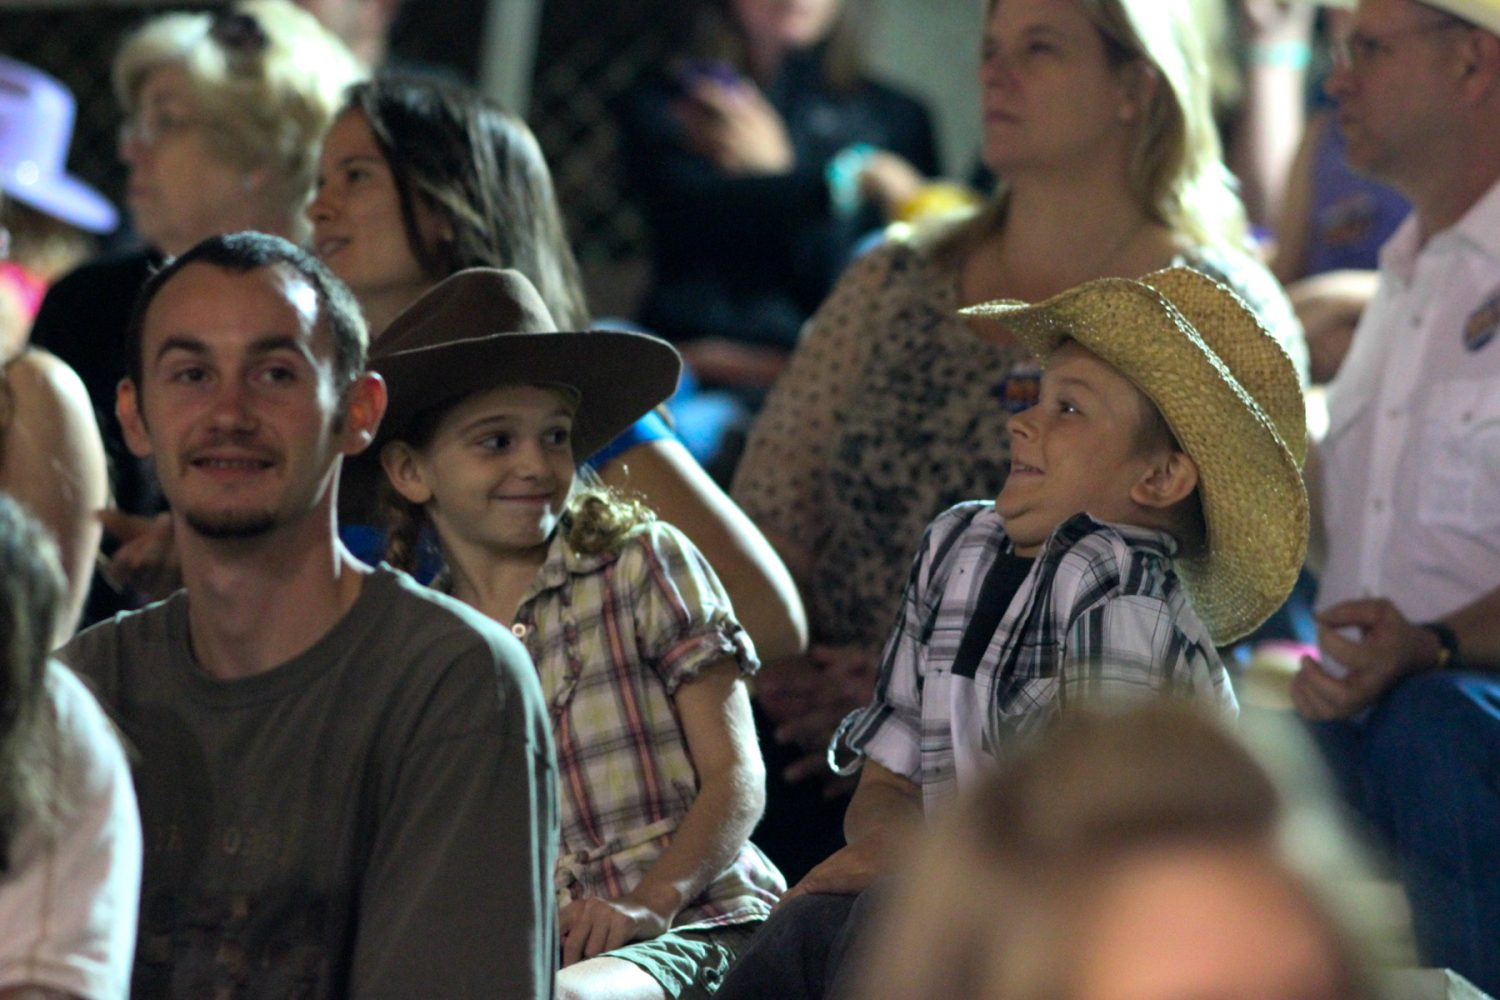 Two children make faces at one another during the intermission of the Ocala Pro Rodeo on Friday night, March 21, 2014.